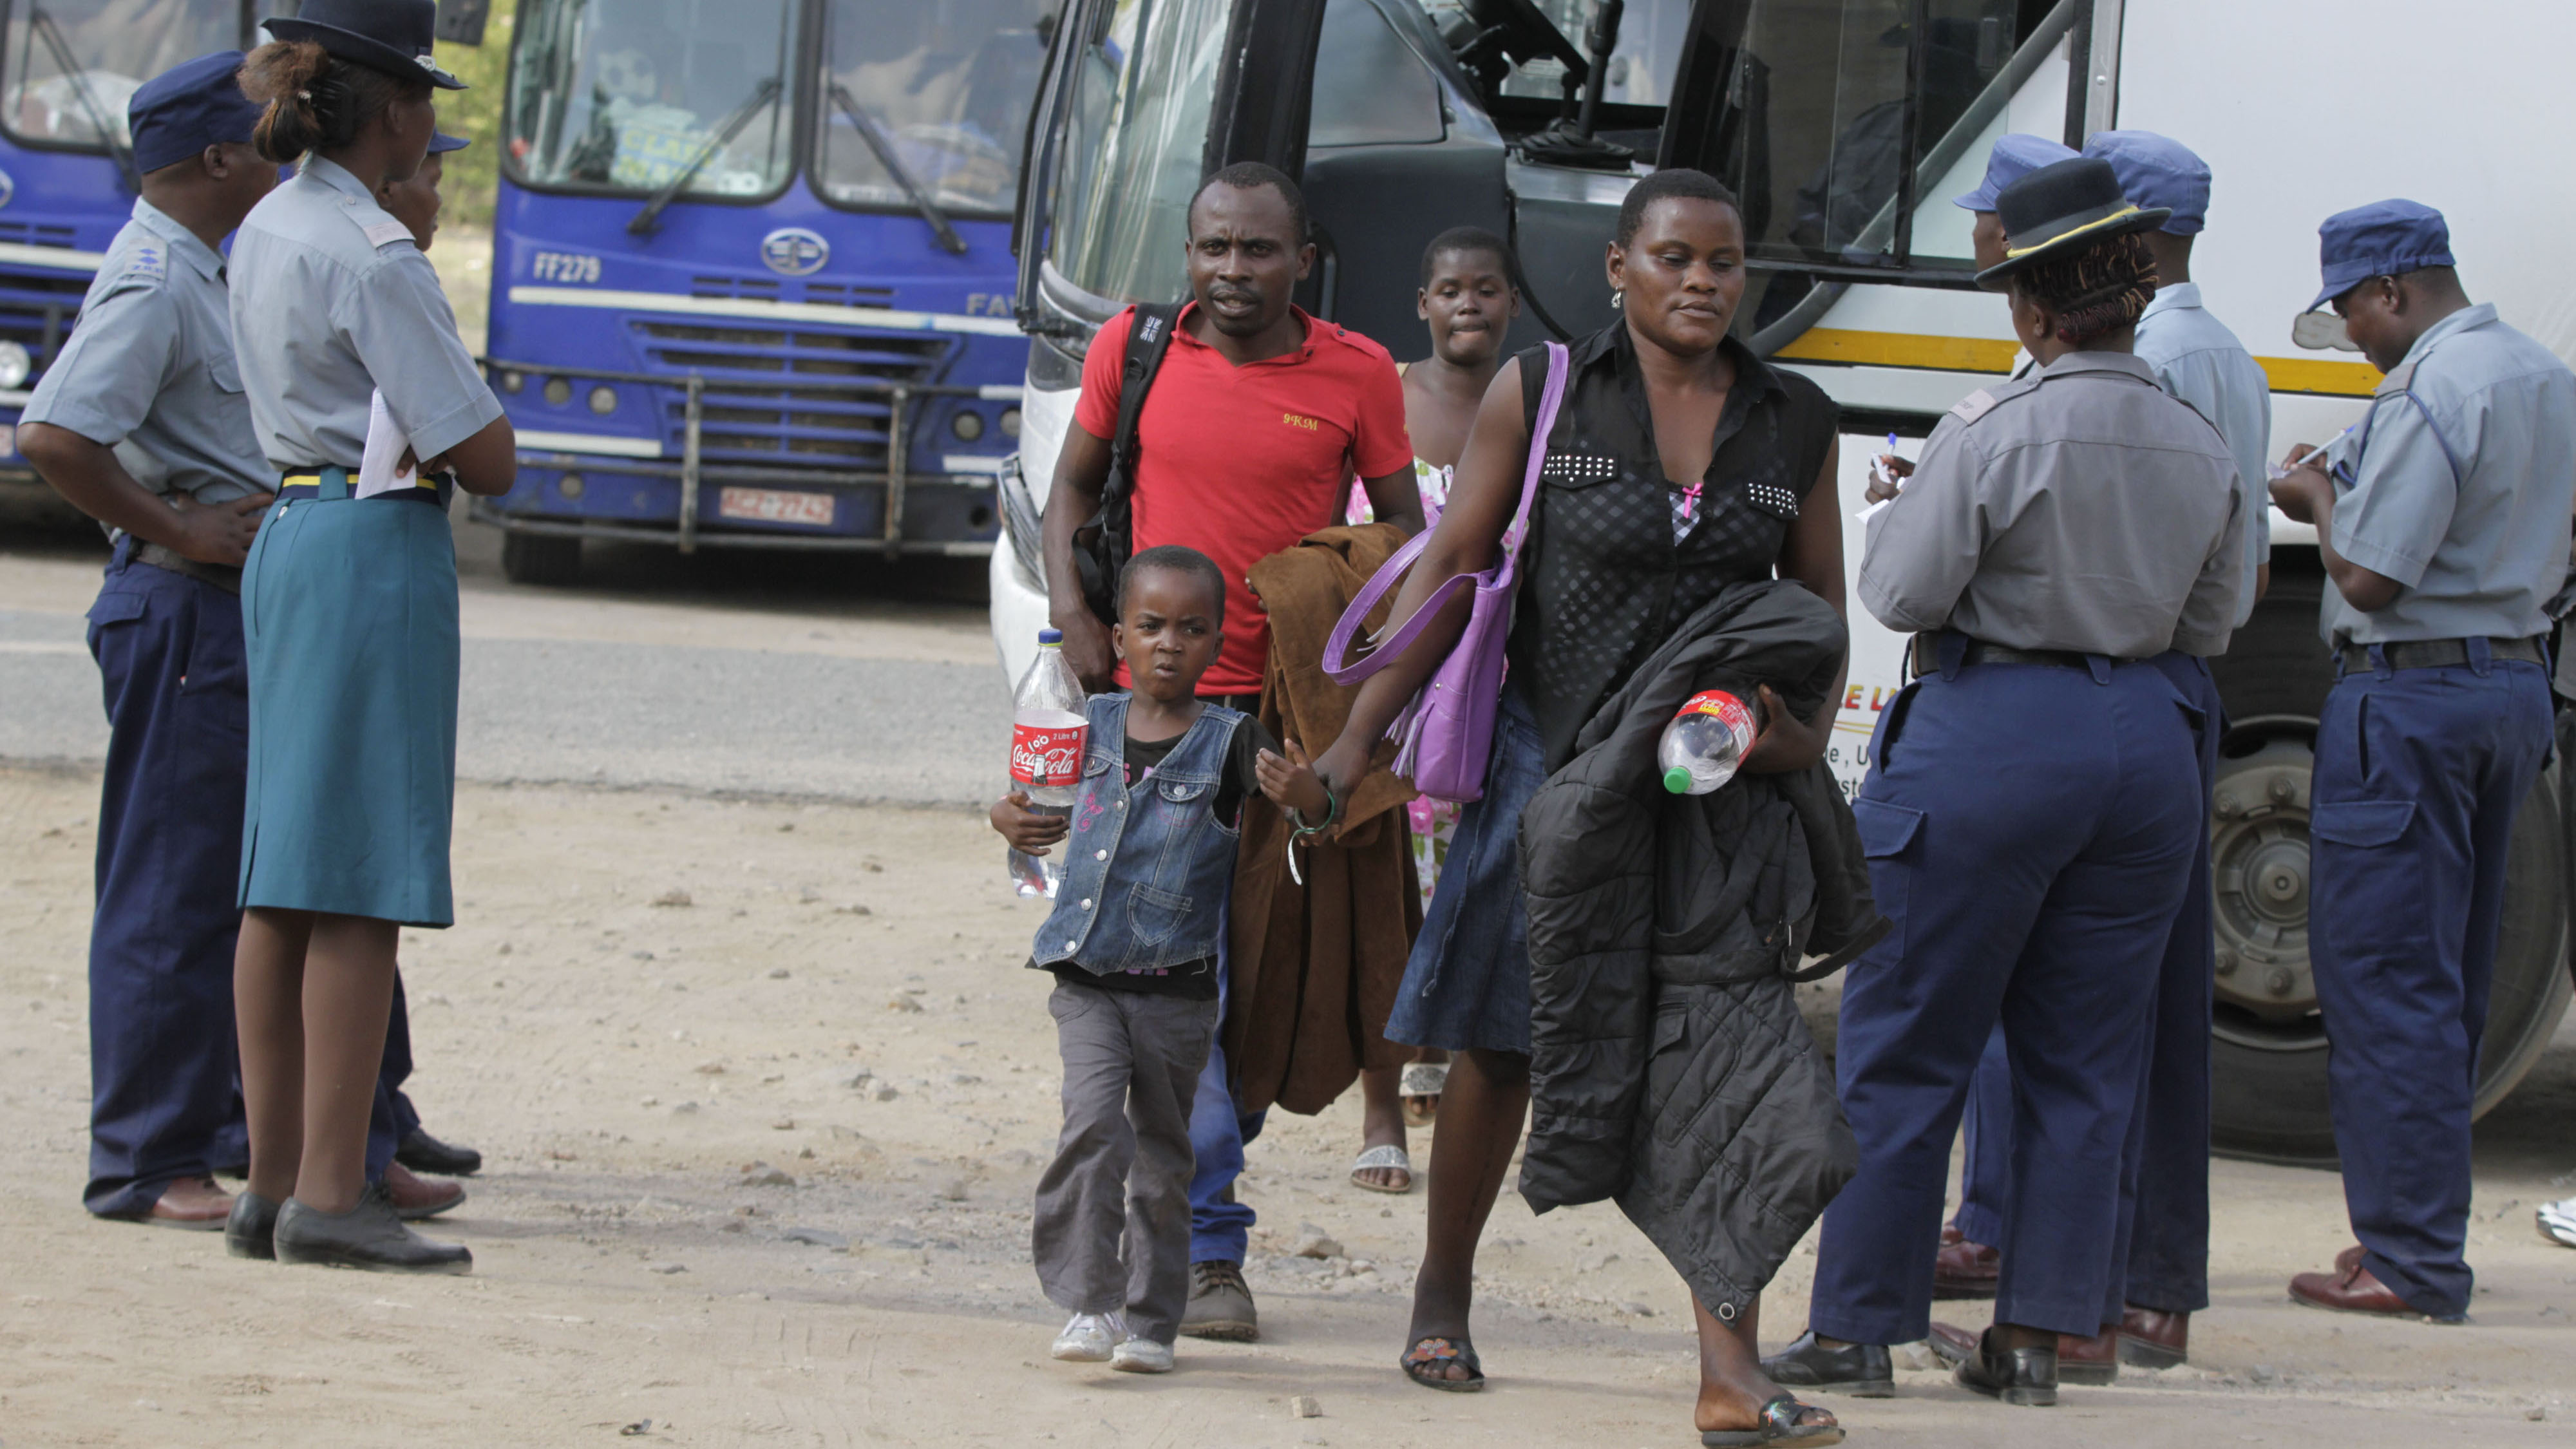 Zimbabweans fleeing xenophobic attacks in South Africa arrive at the border town of Beitbridge in government-provided transport